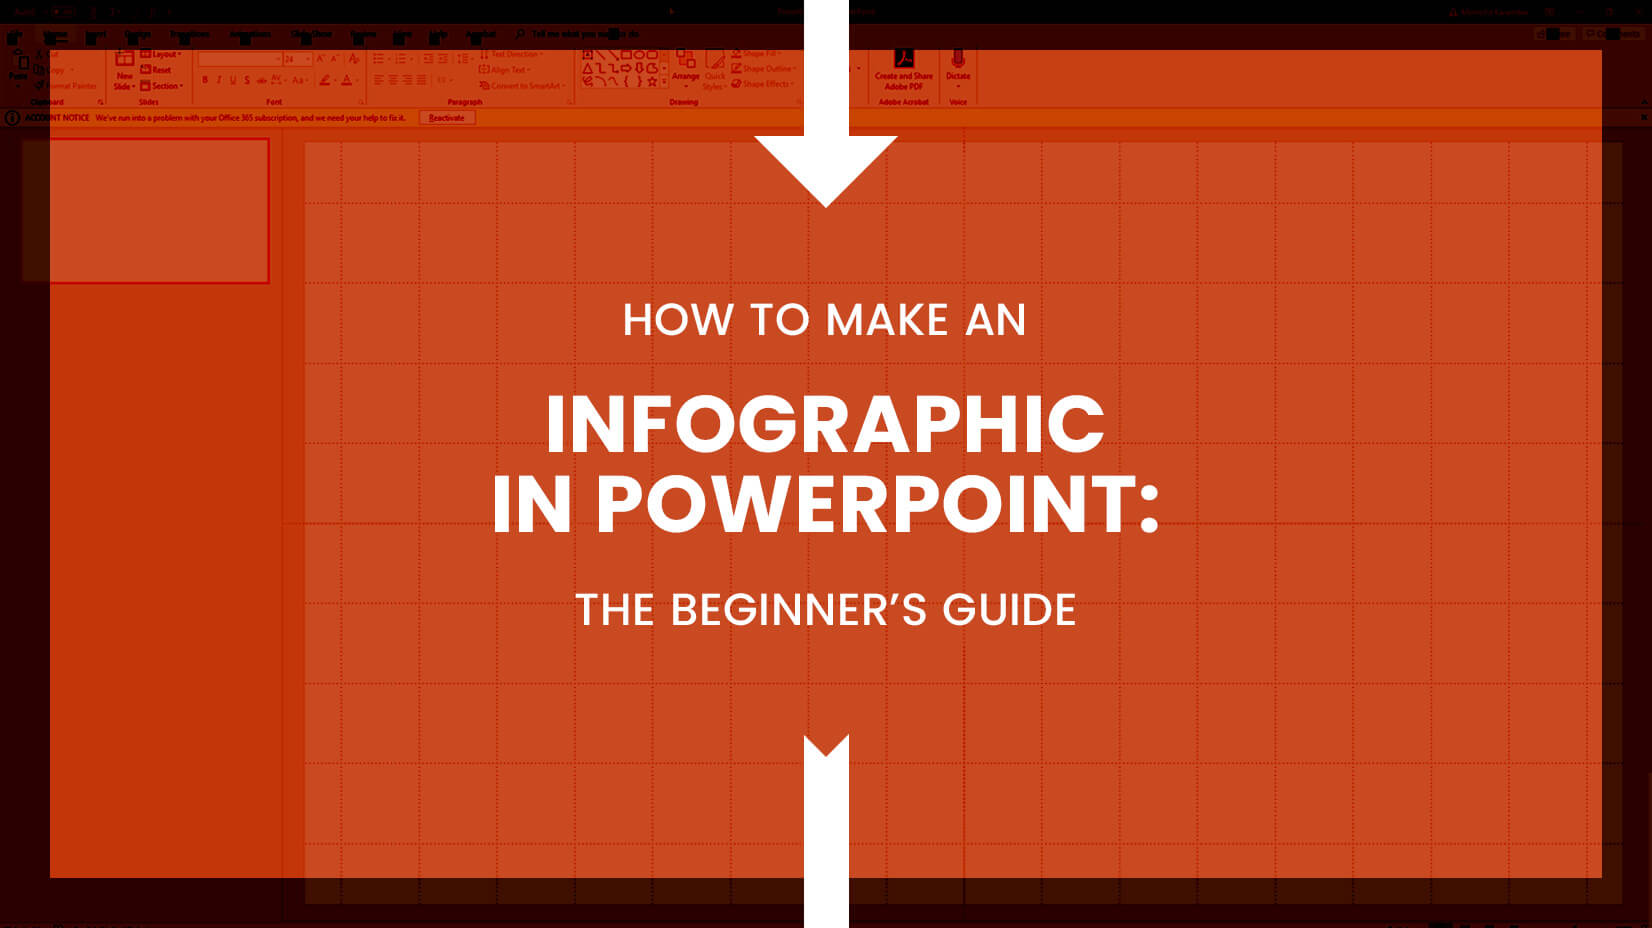 an infographic in powerpoint